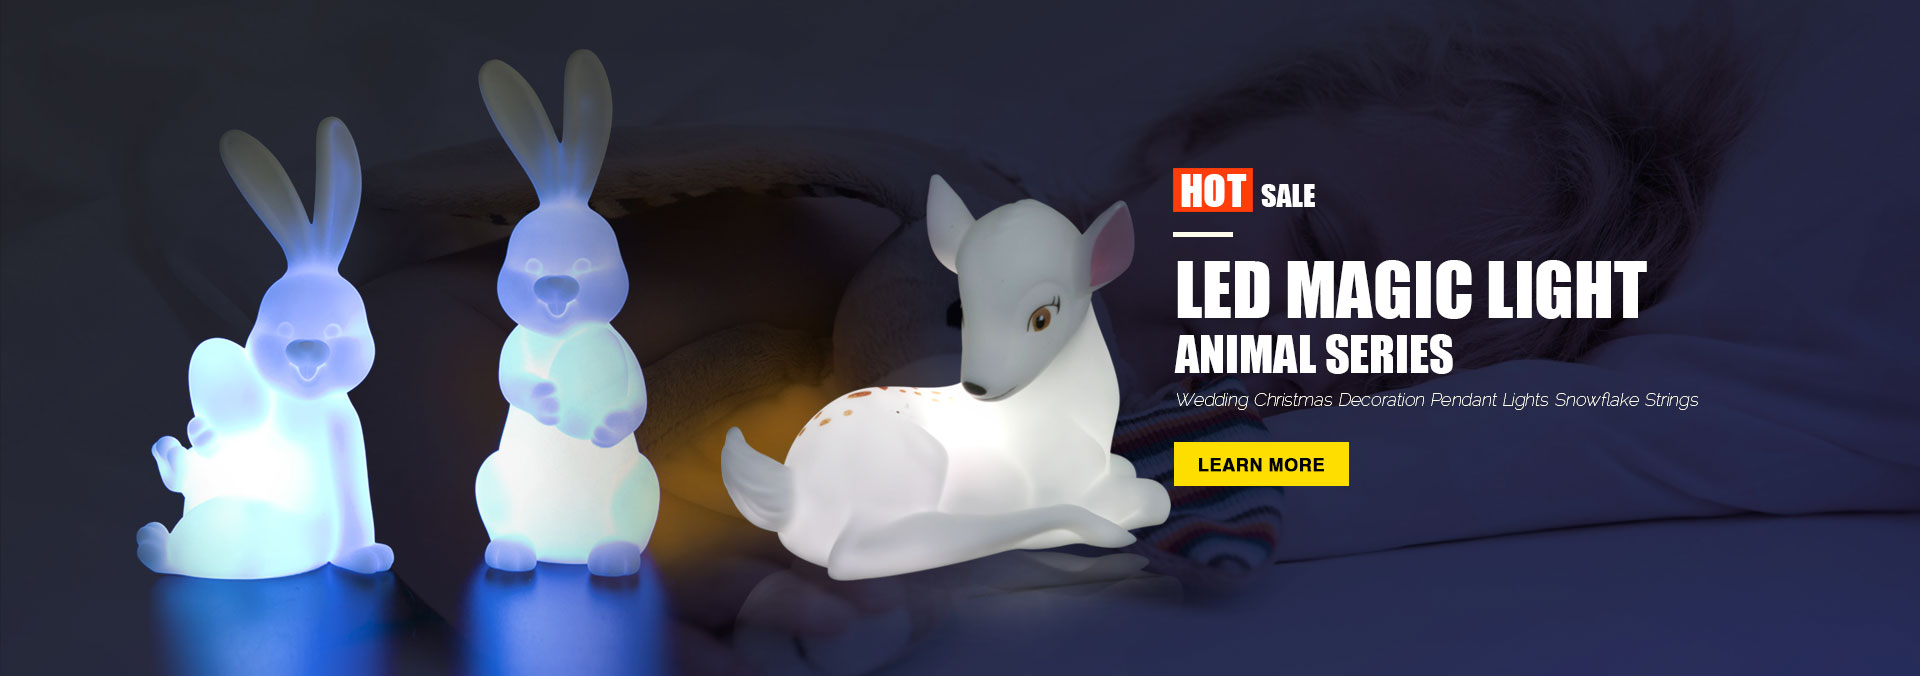 LED Magic Light Animal